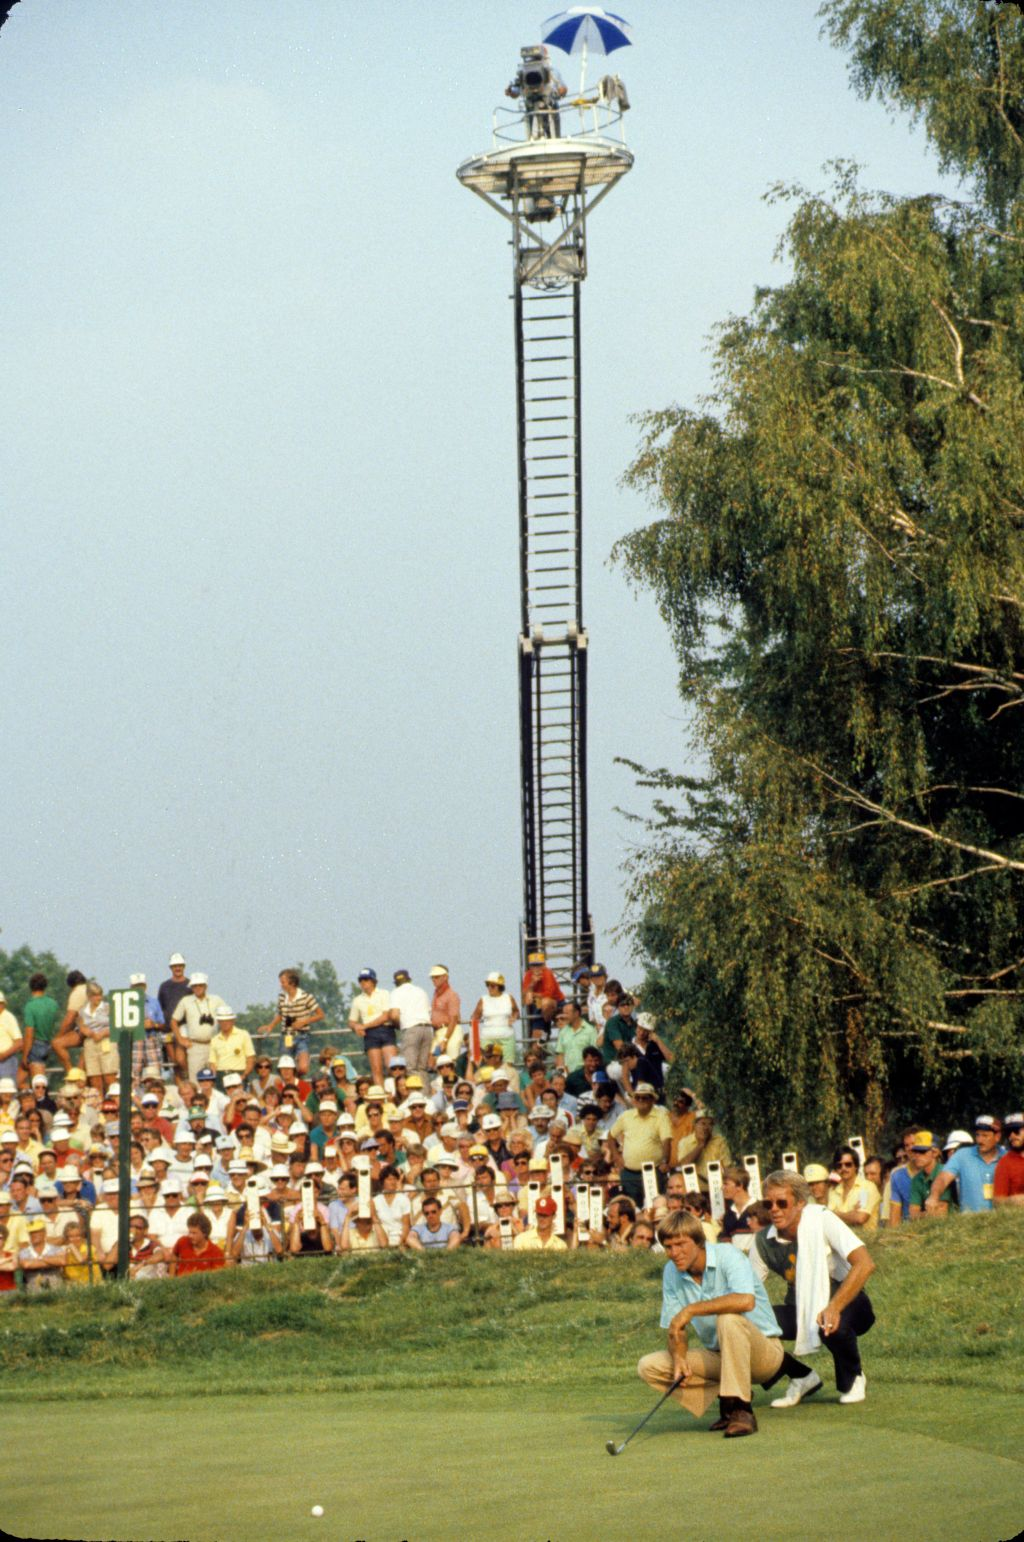 Bill Rogers and his caddie lining up a putt with a hi-rise TV tower catching the action during the 1981 US Open